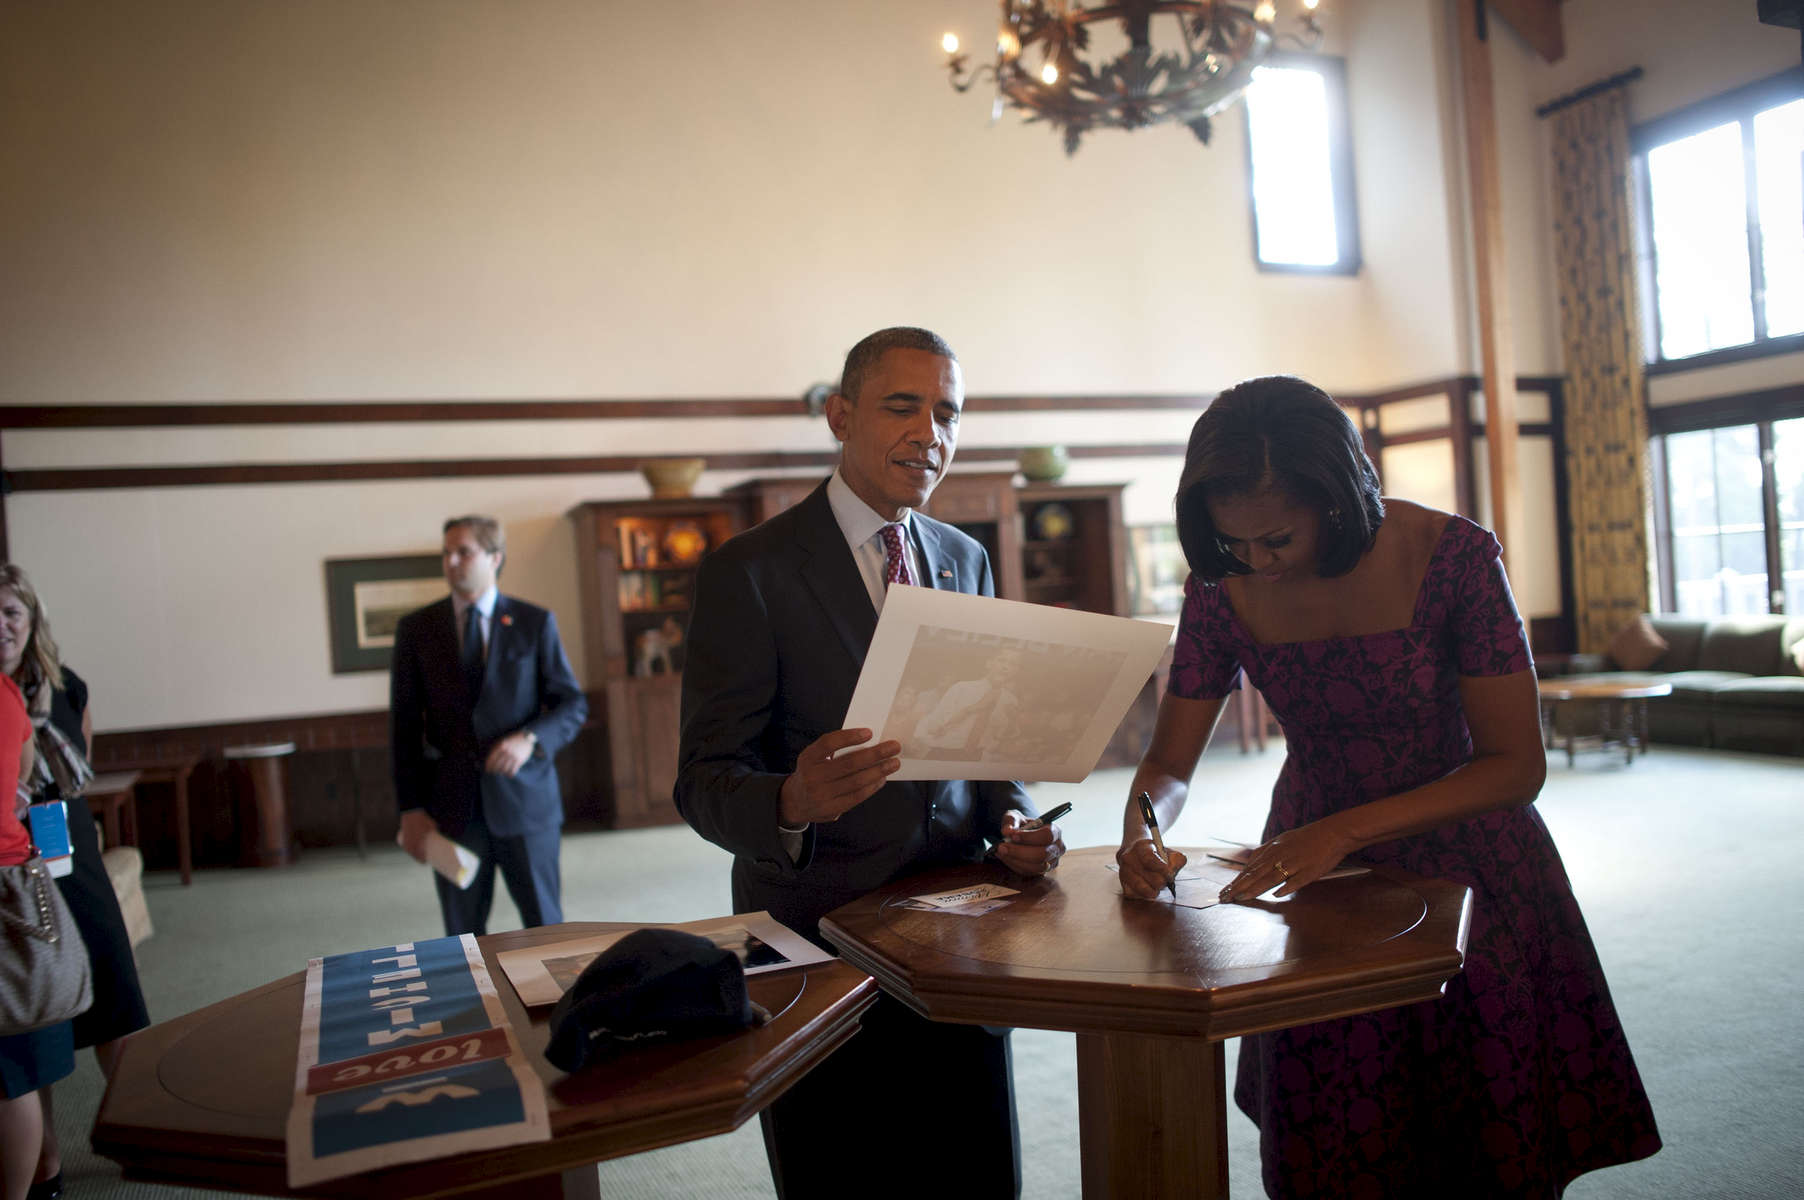 September 5, 2012 - CHARLOTTE, NC: President Barack Obama looks nostalgically at an old picture of himself speaking while he and his wife, First Lady Michelle Obama sign things for supporters during the Democratic National Convention. (Scout Tufankjian for Obama for America/Polaris)